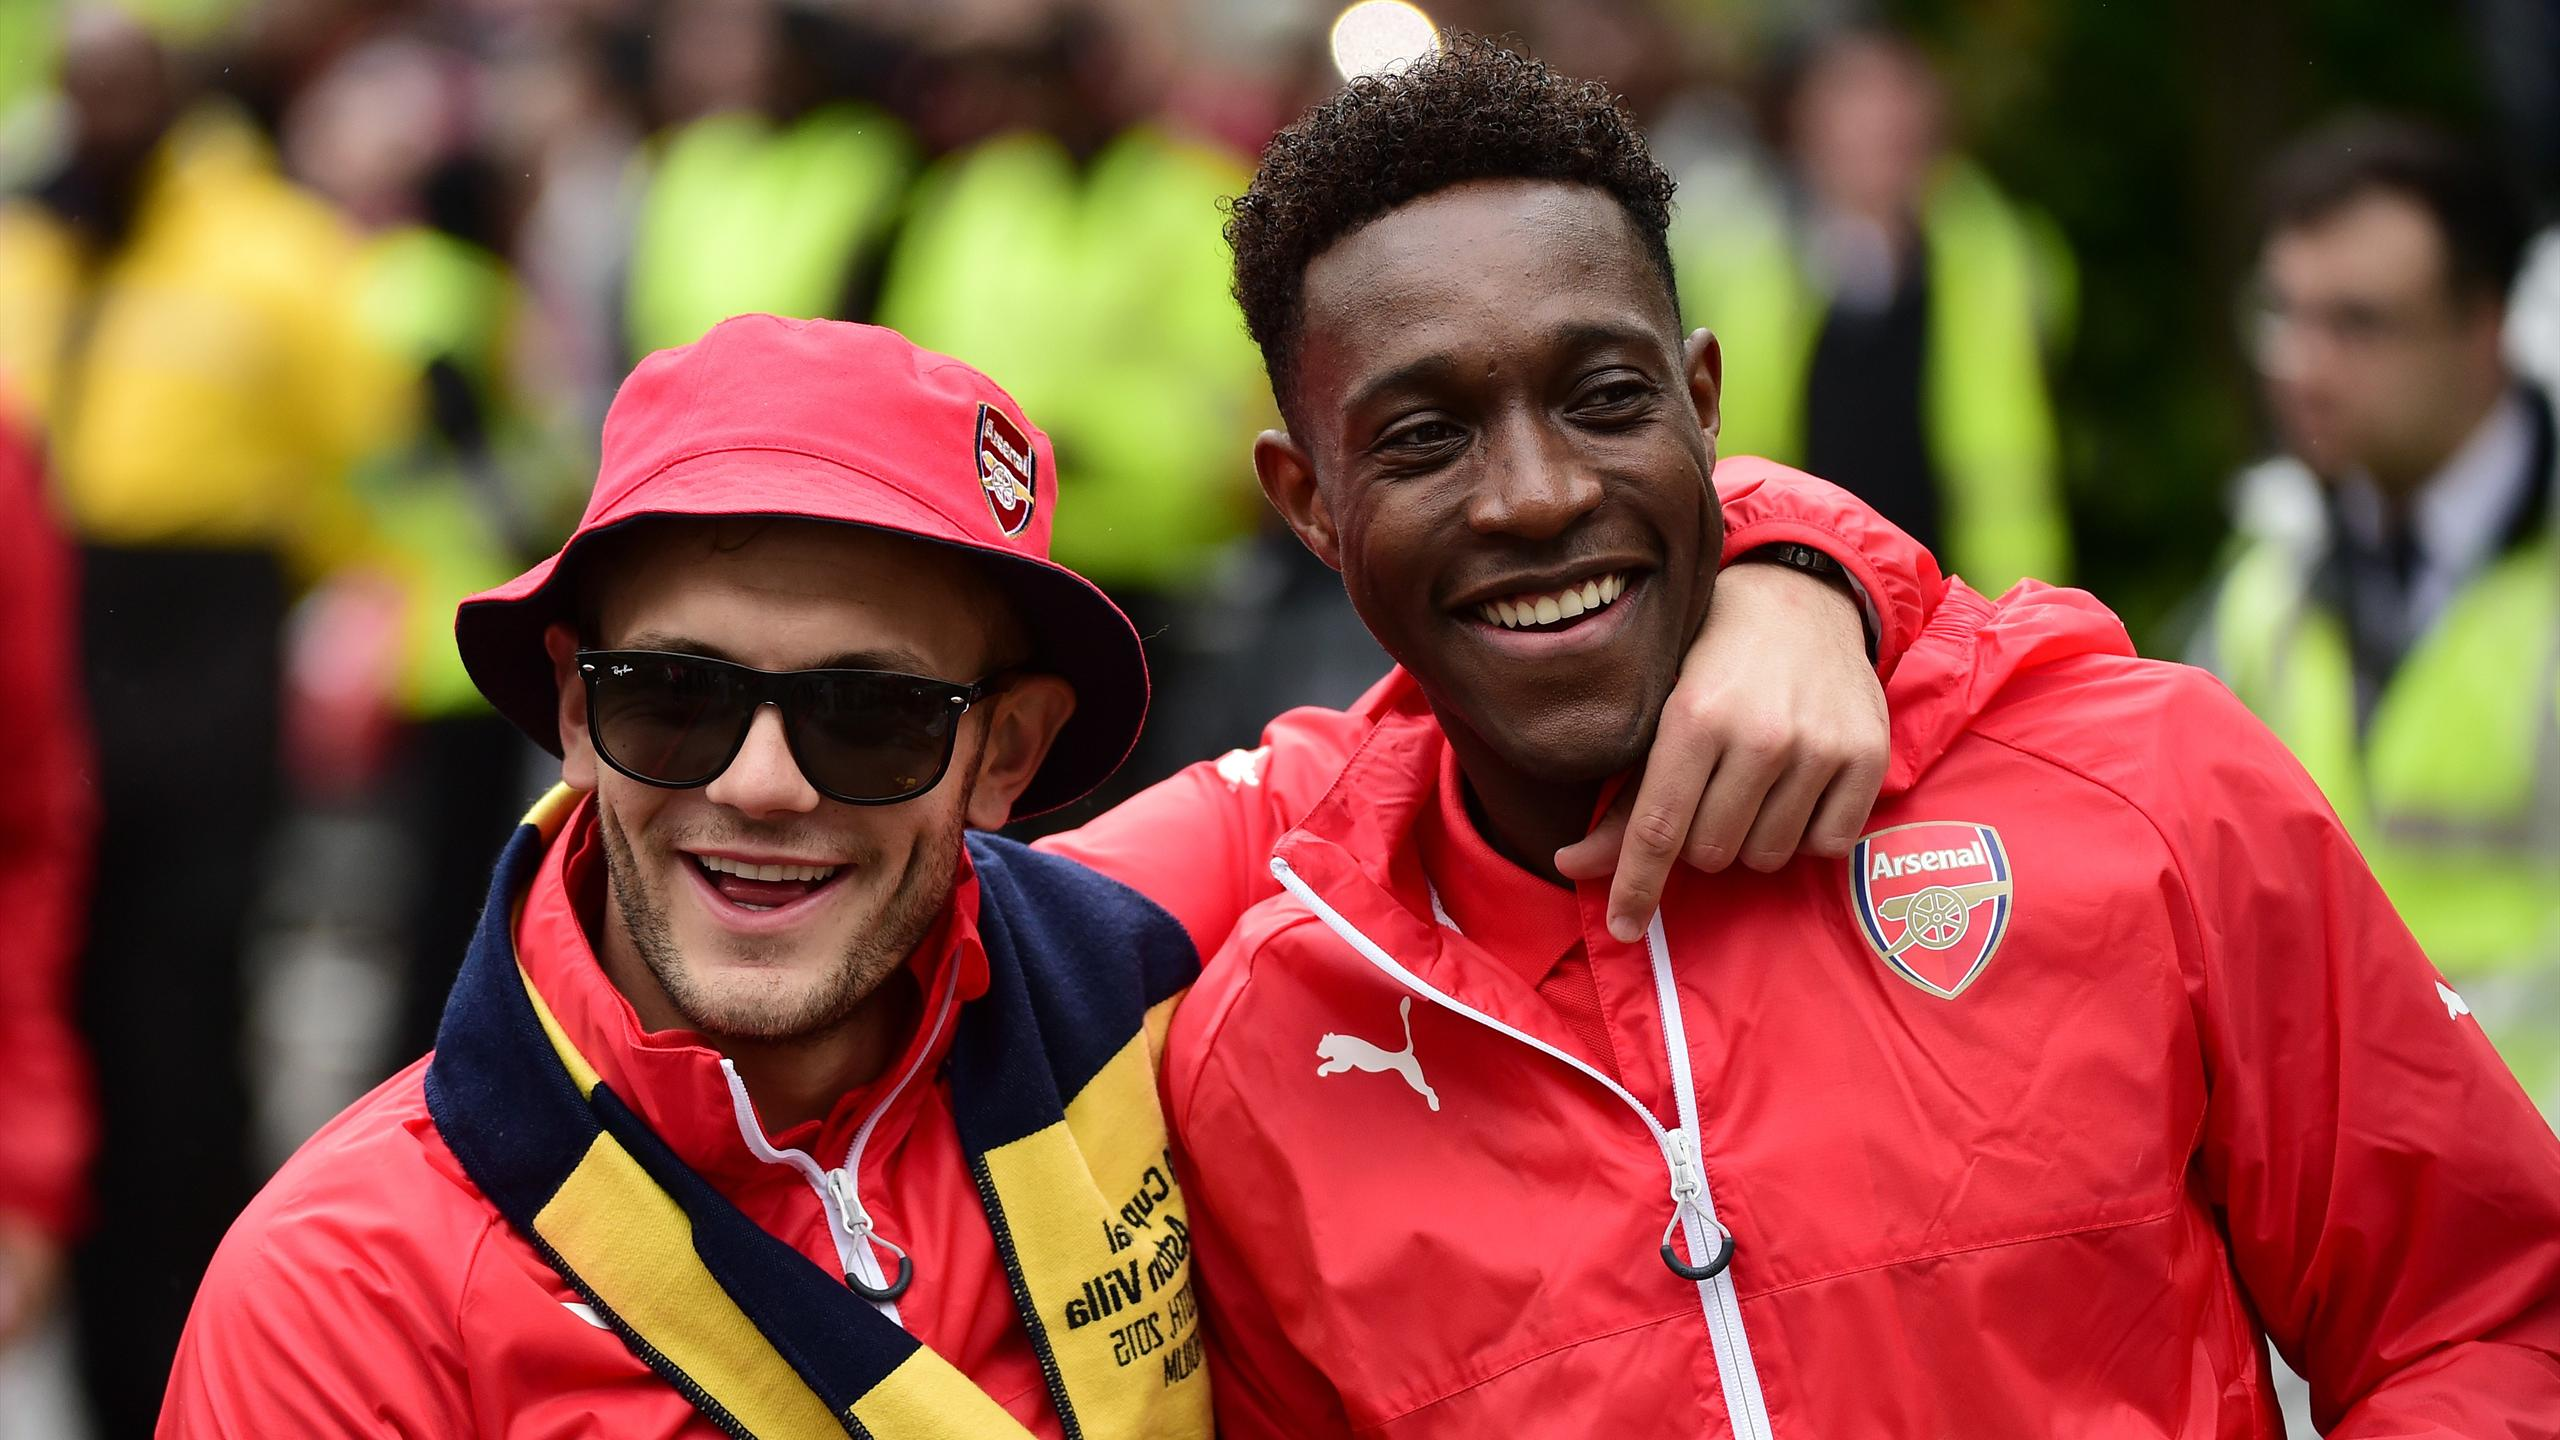 Arsenal's English midfielder Jack Wilshere and Arsenal's English striker Danny Welbeck react during the Arsenal victory parade in London on May 31, 2015